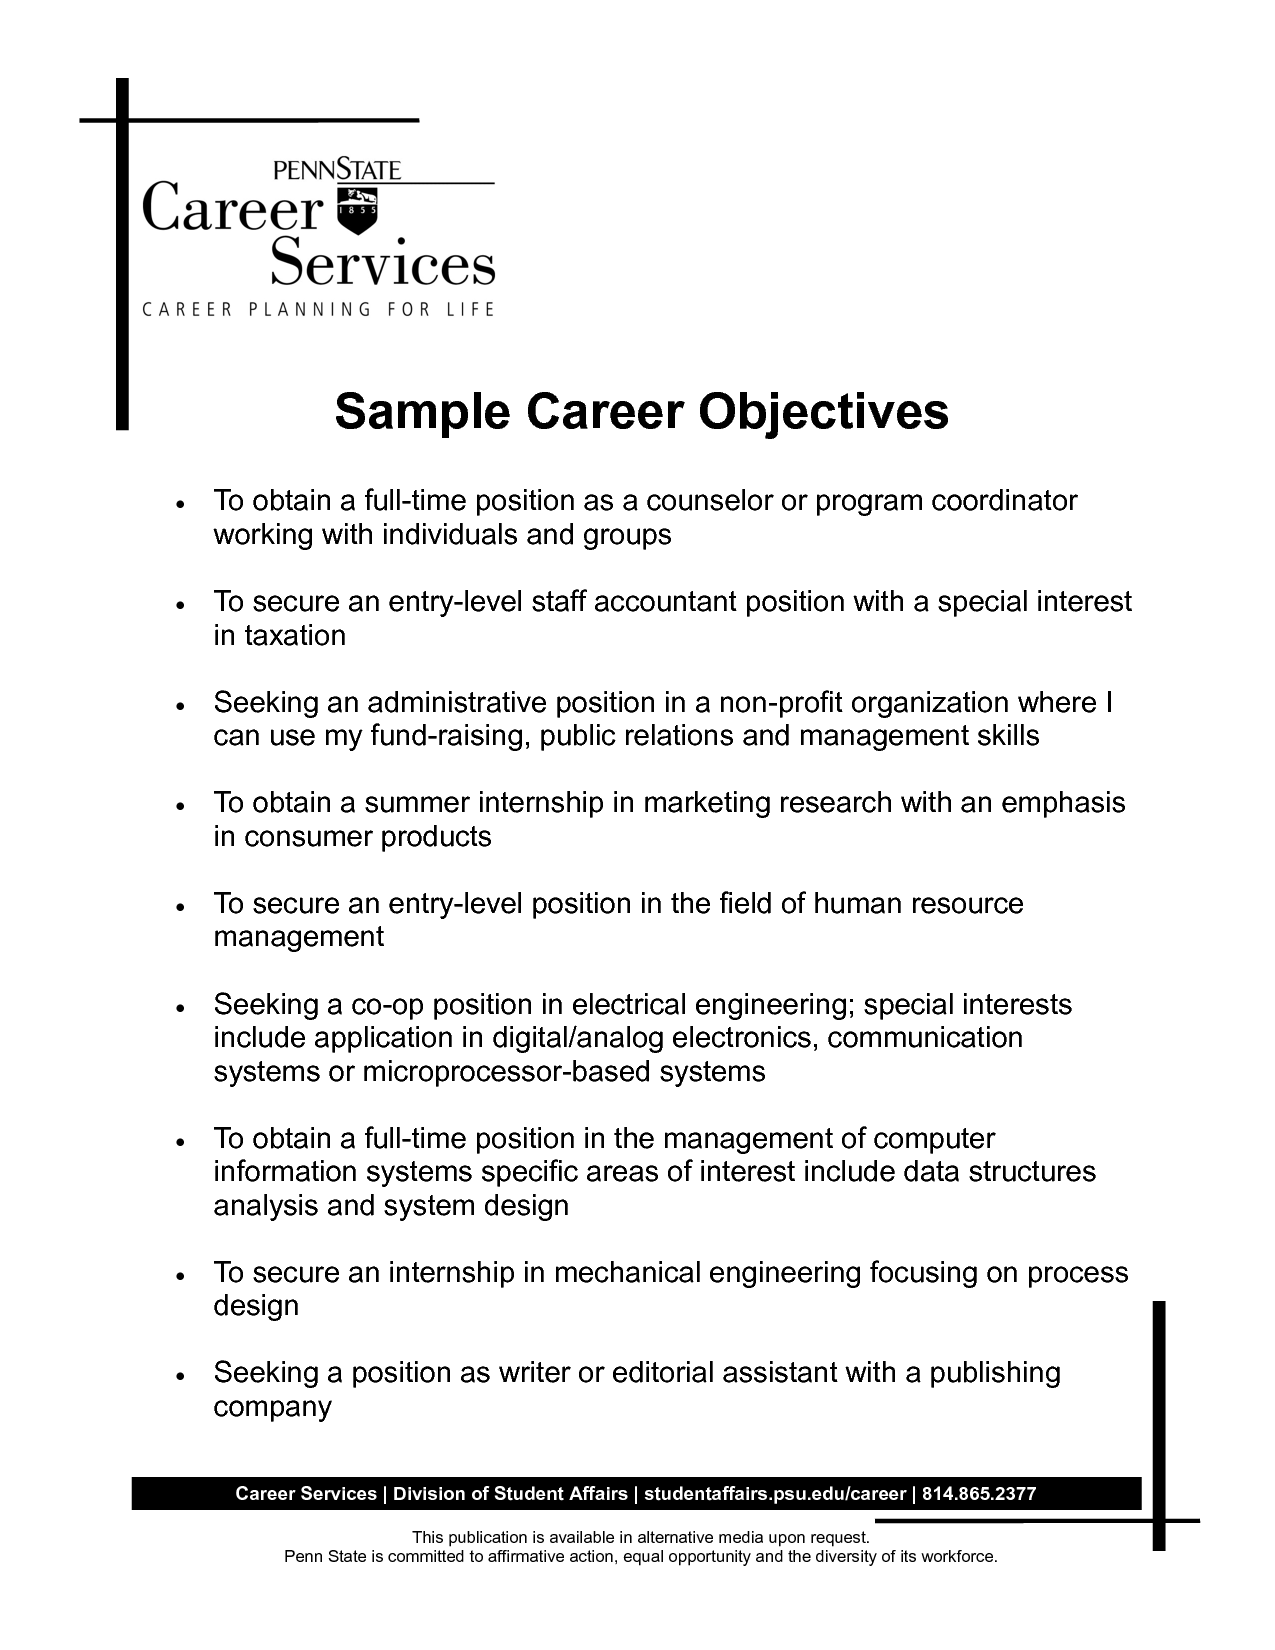 Job Objective For Resume Career Objective Resume Accountant  Httpwwwresumecareer